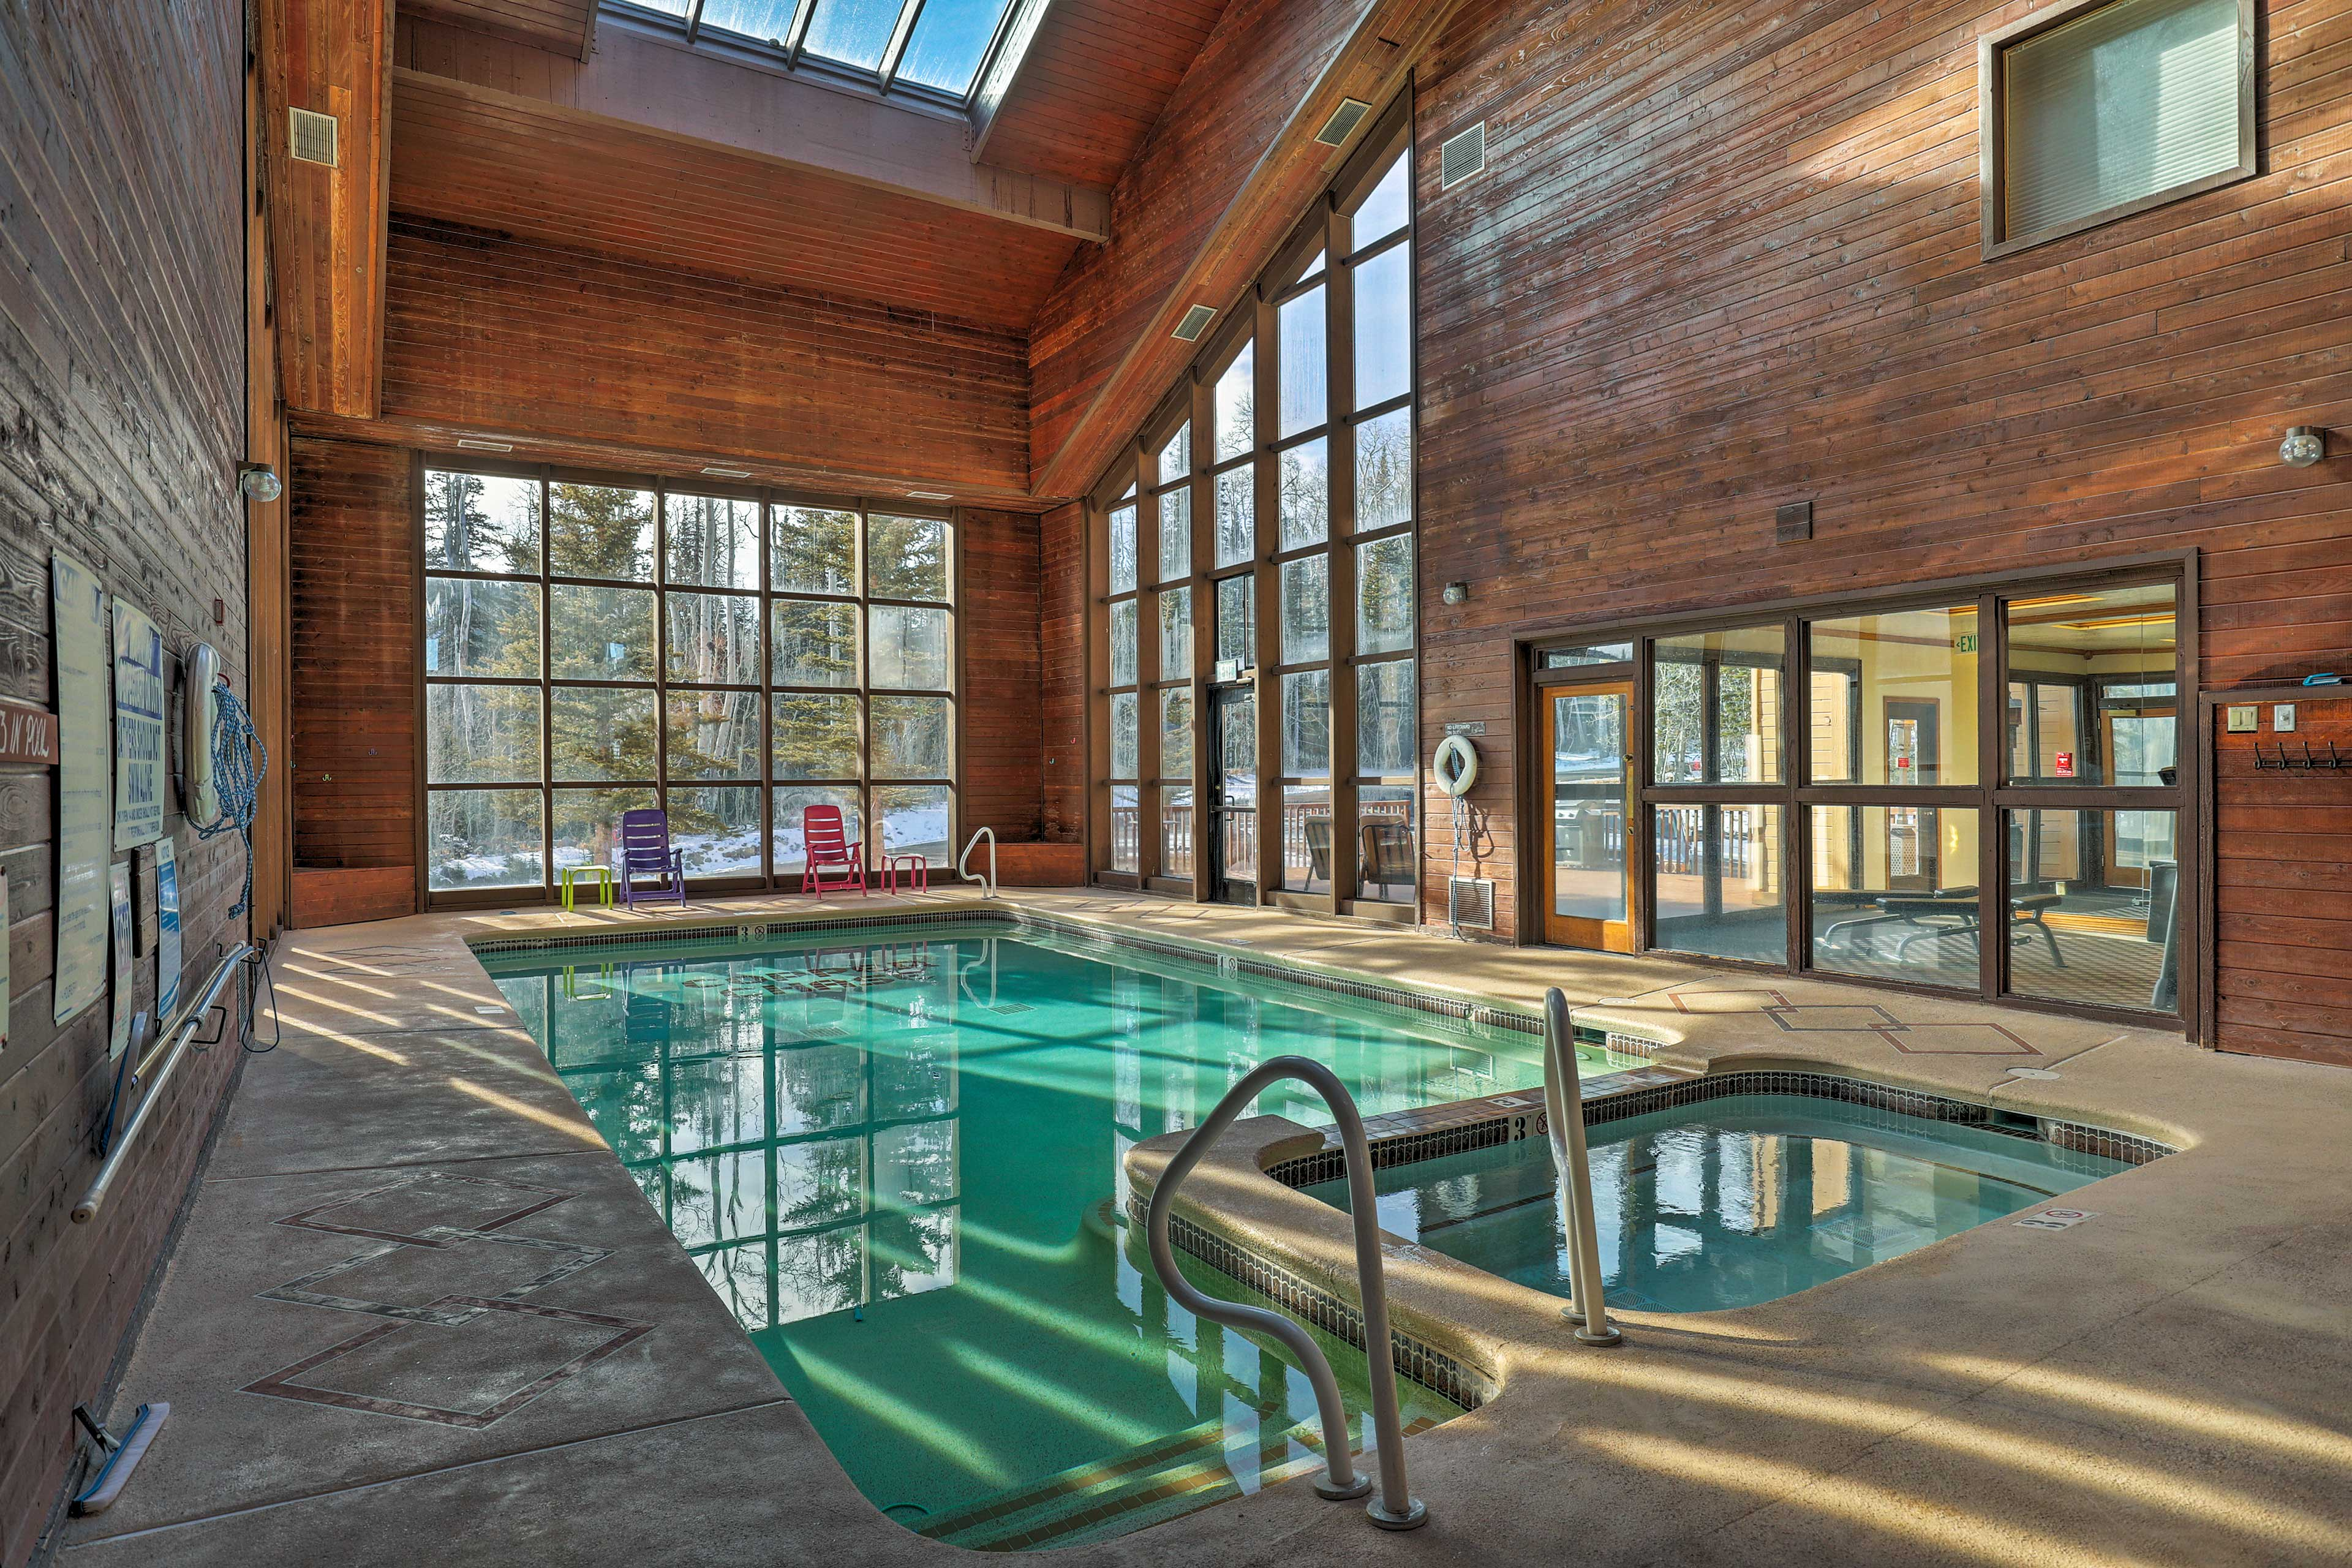 You'll be thrilled with the Copper Chase amenities like an indoor pool.